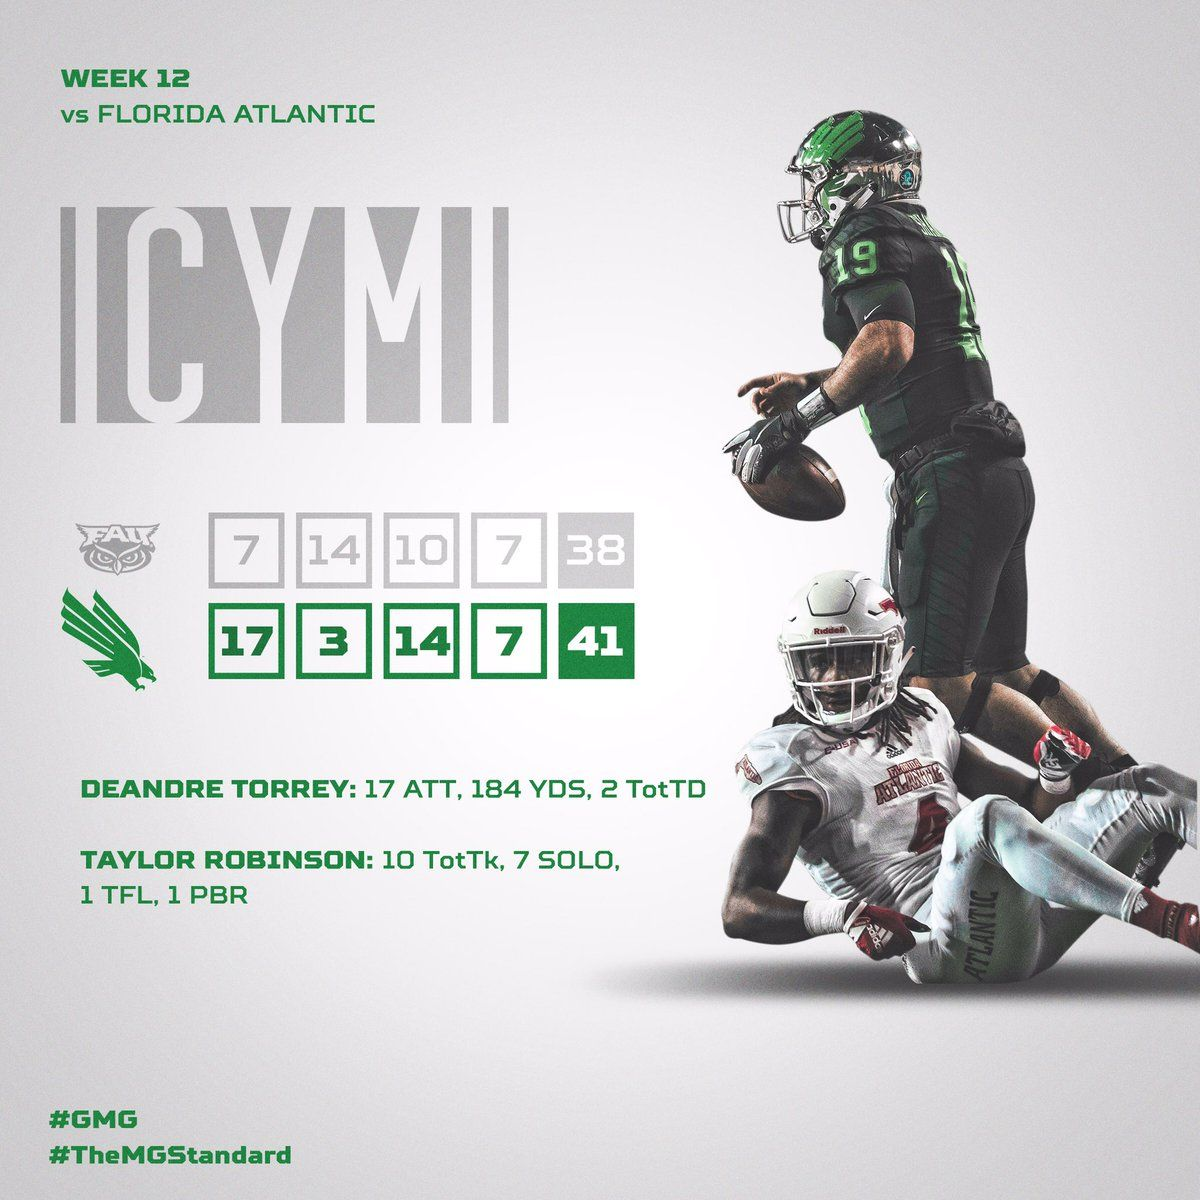 Pin by SkullSparks on Sports Infographics Sports design